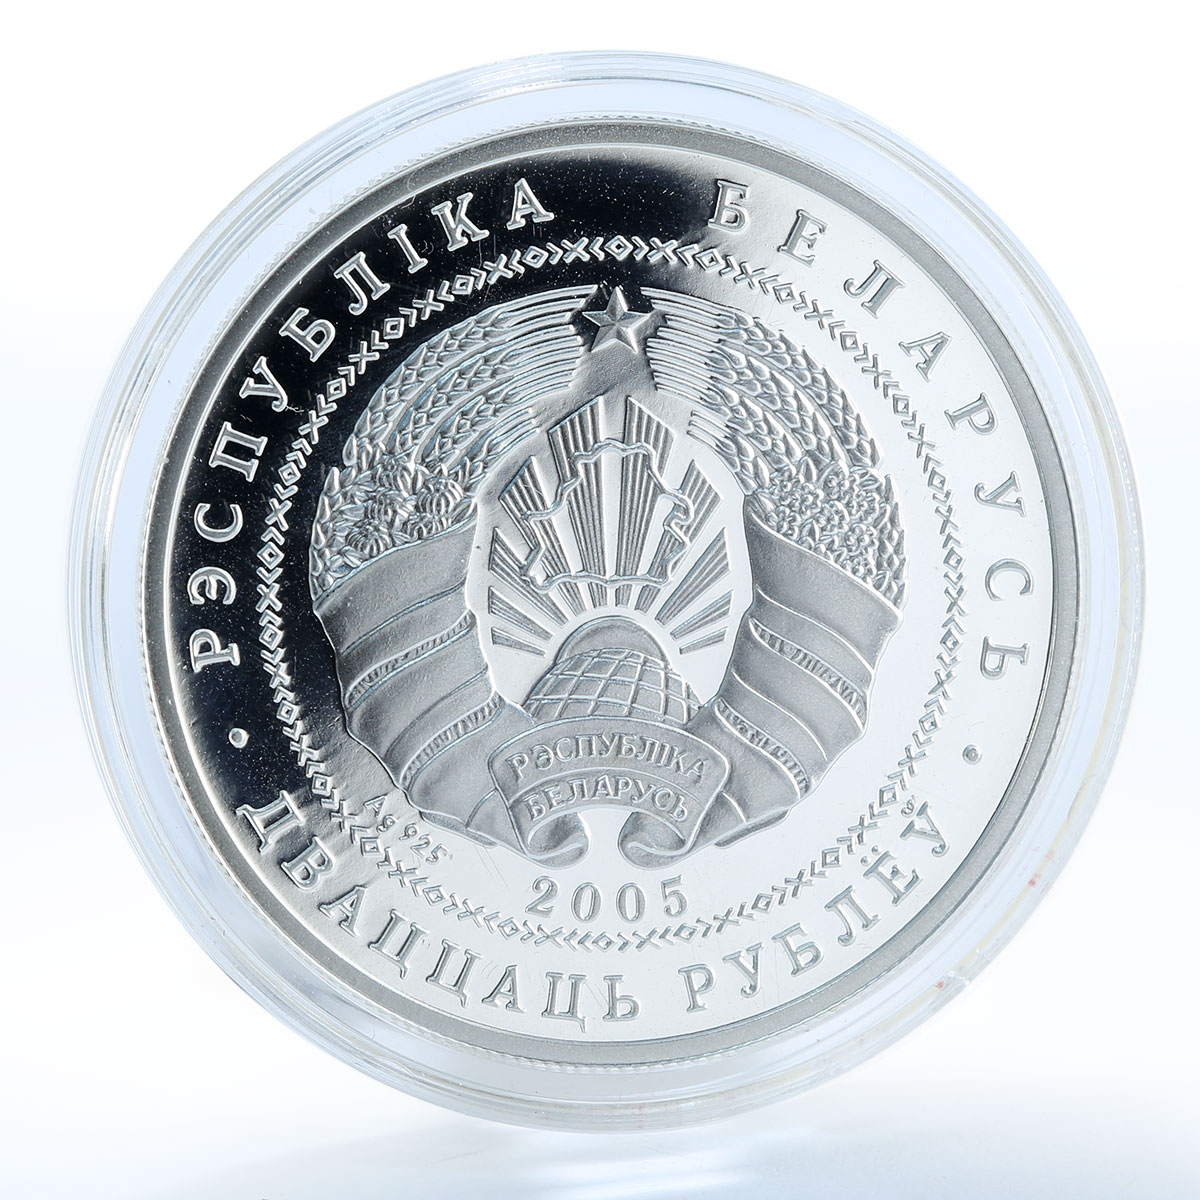 Belarus 20 rubles, Pharny Roman Catholic Church, Nesvizh, silver proof coin 2005